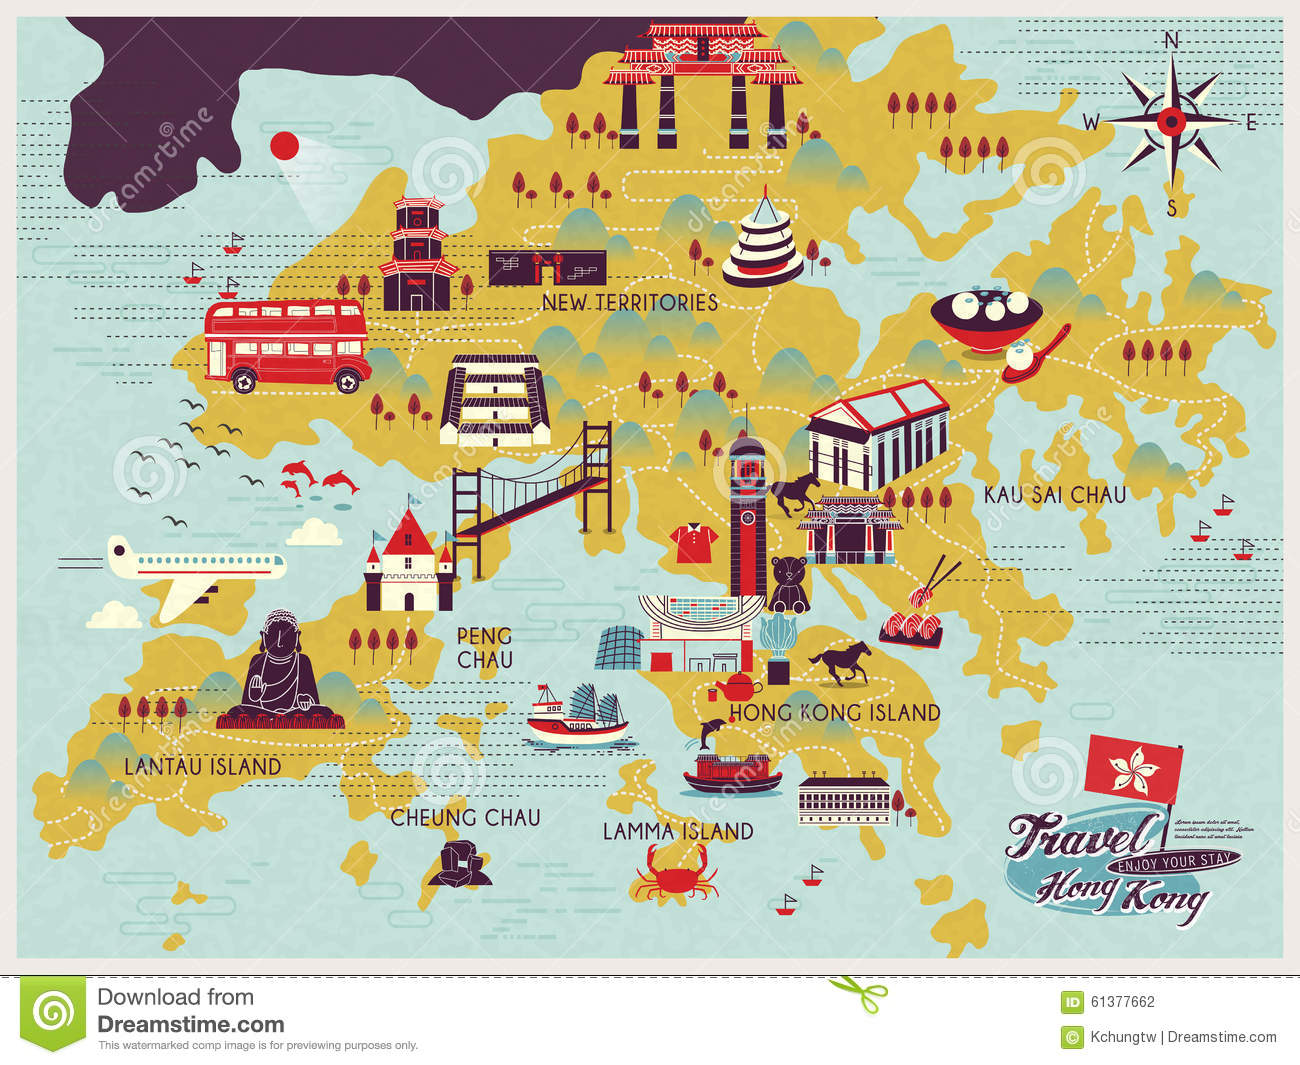 Hong Kong Travel Map Vector Image 61377662 – Hong Kong Map For Tourist